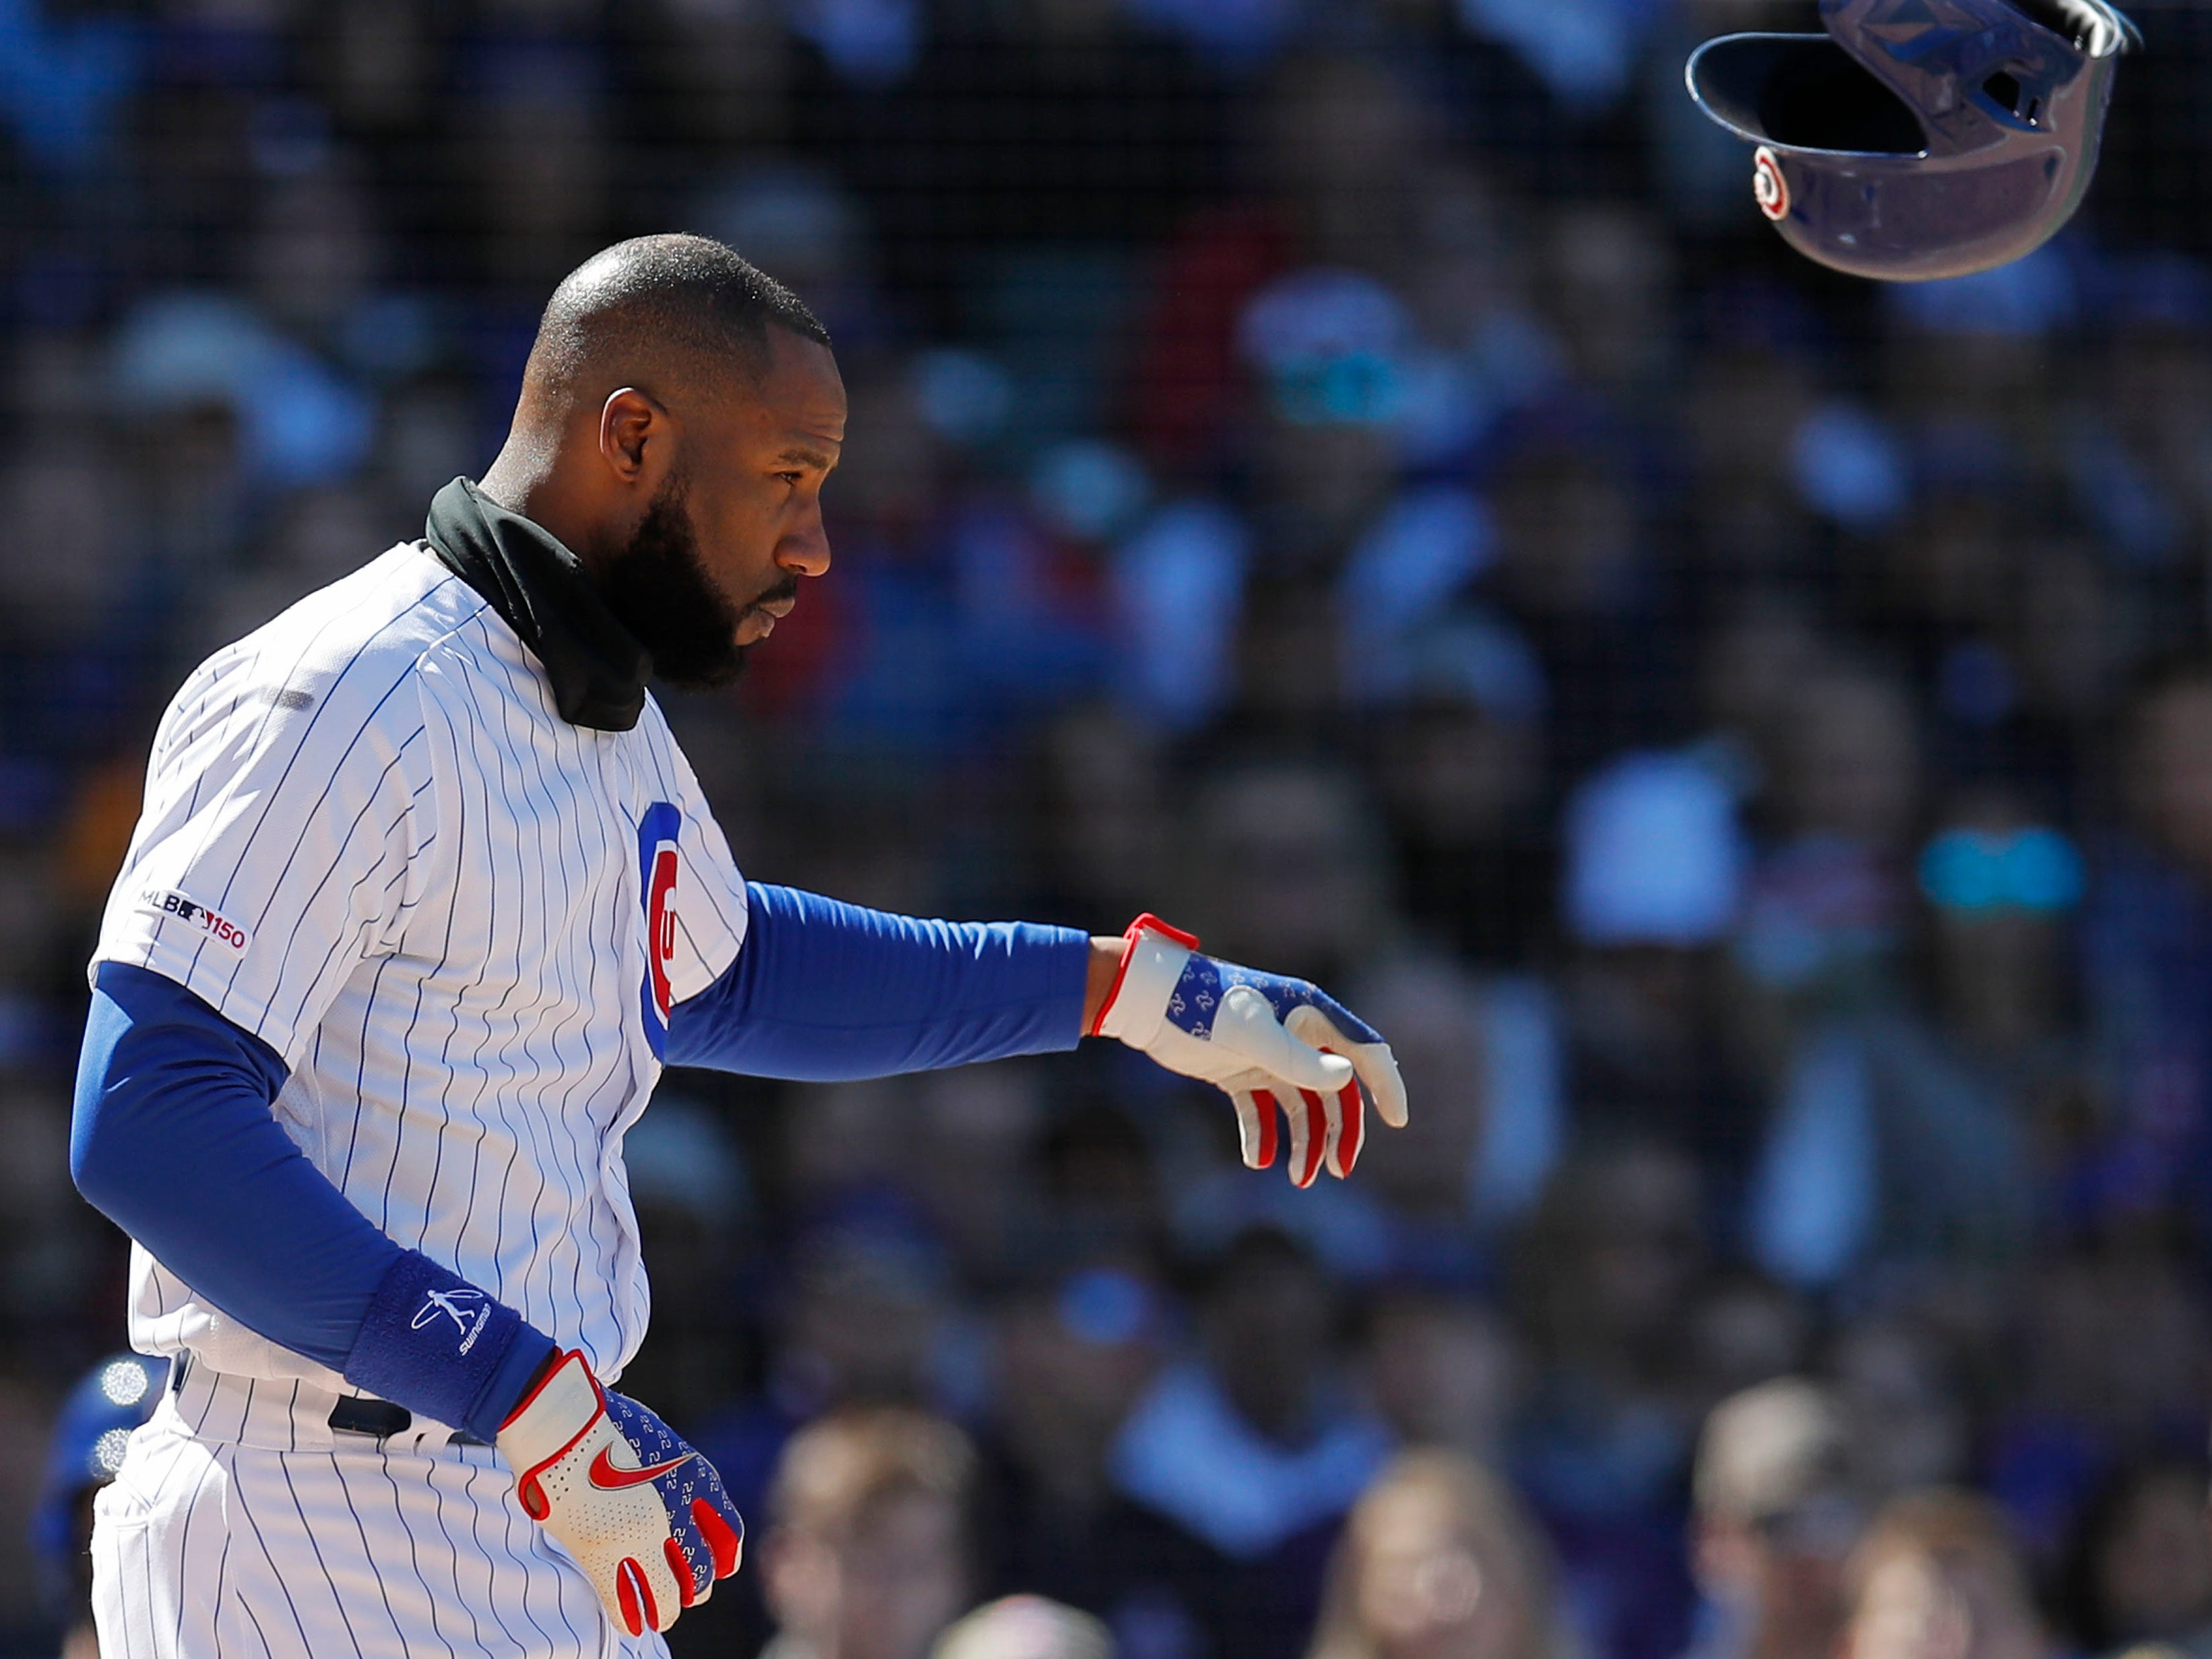 Cubs right fielder Jason Heyward tosses his helmet after striking out during the fourth inning of a game April 20 at Wrigley Field.